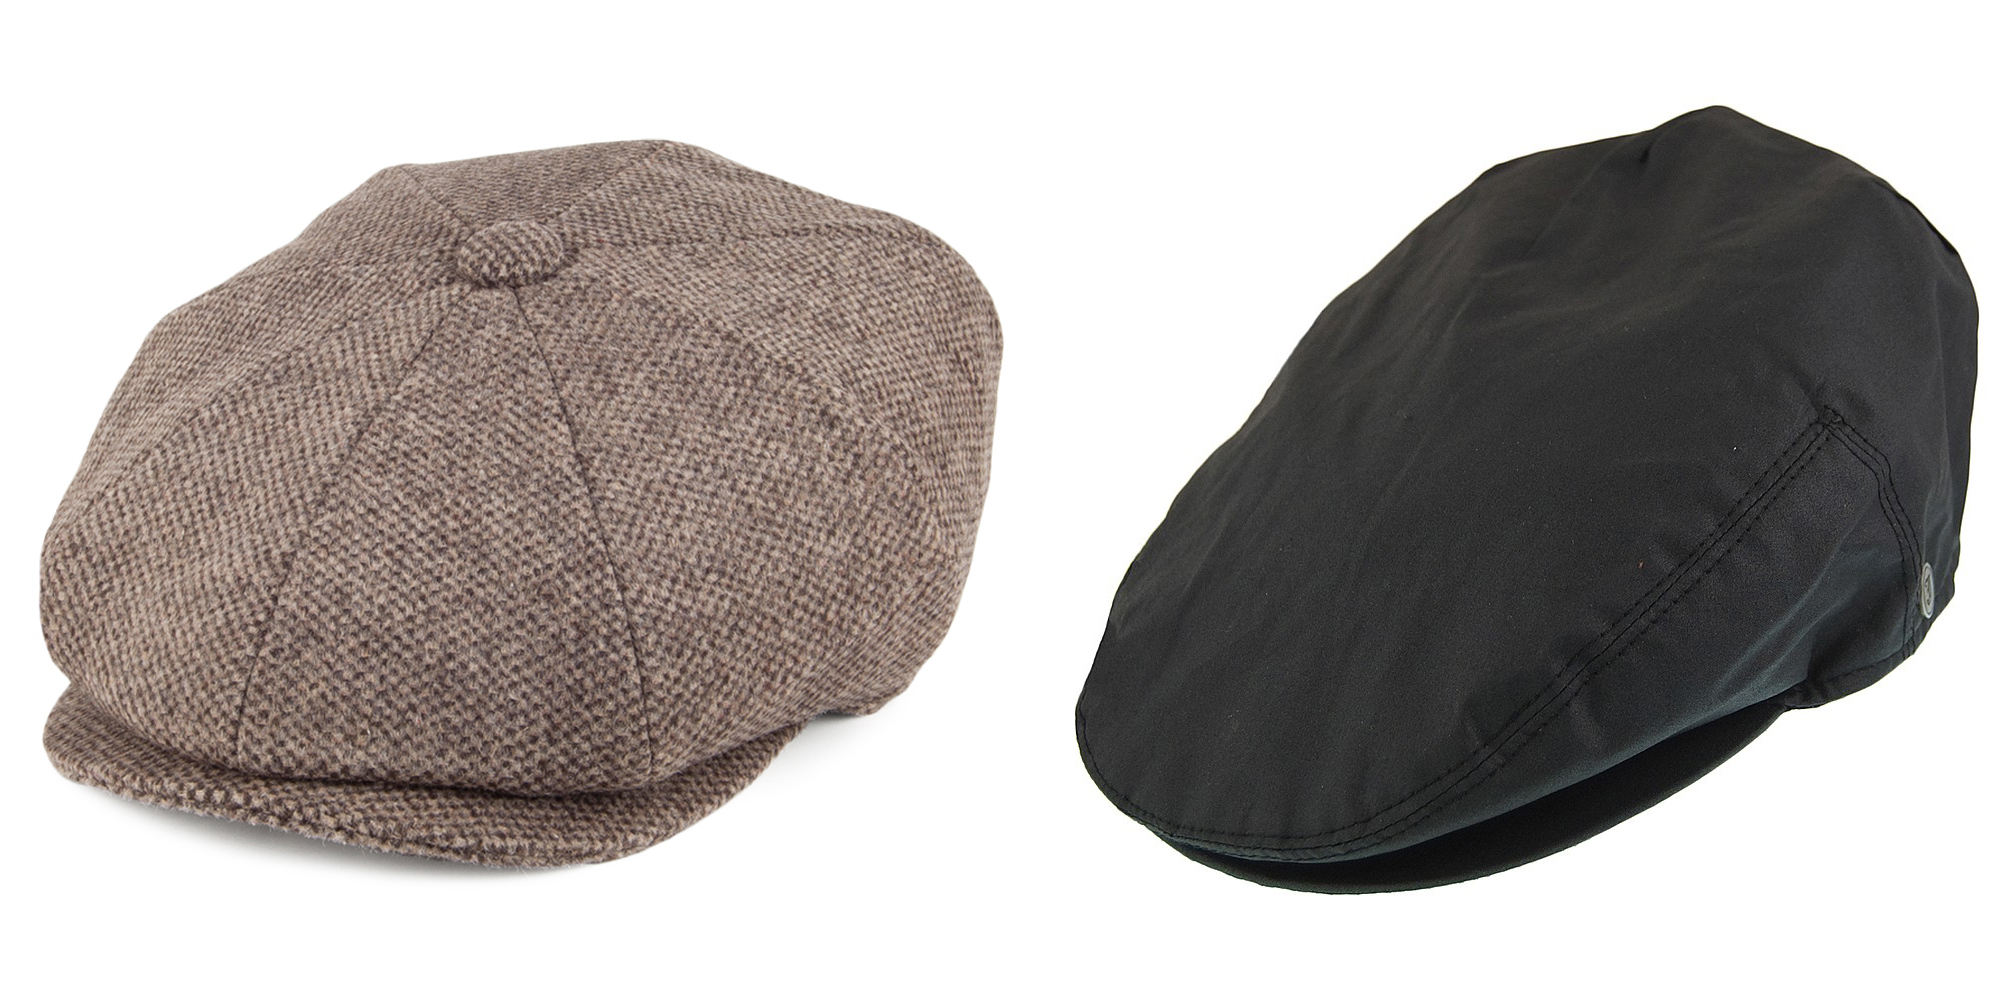 BAKER FLAT CAP GROUP PRODUCTS